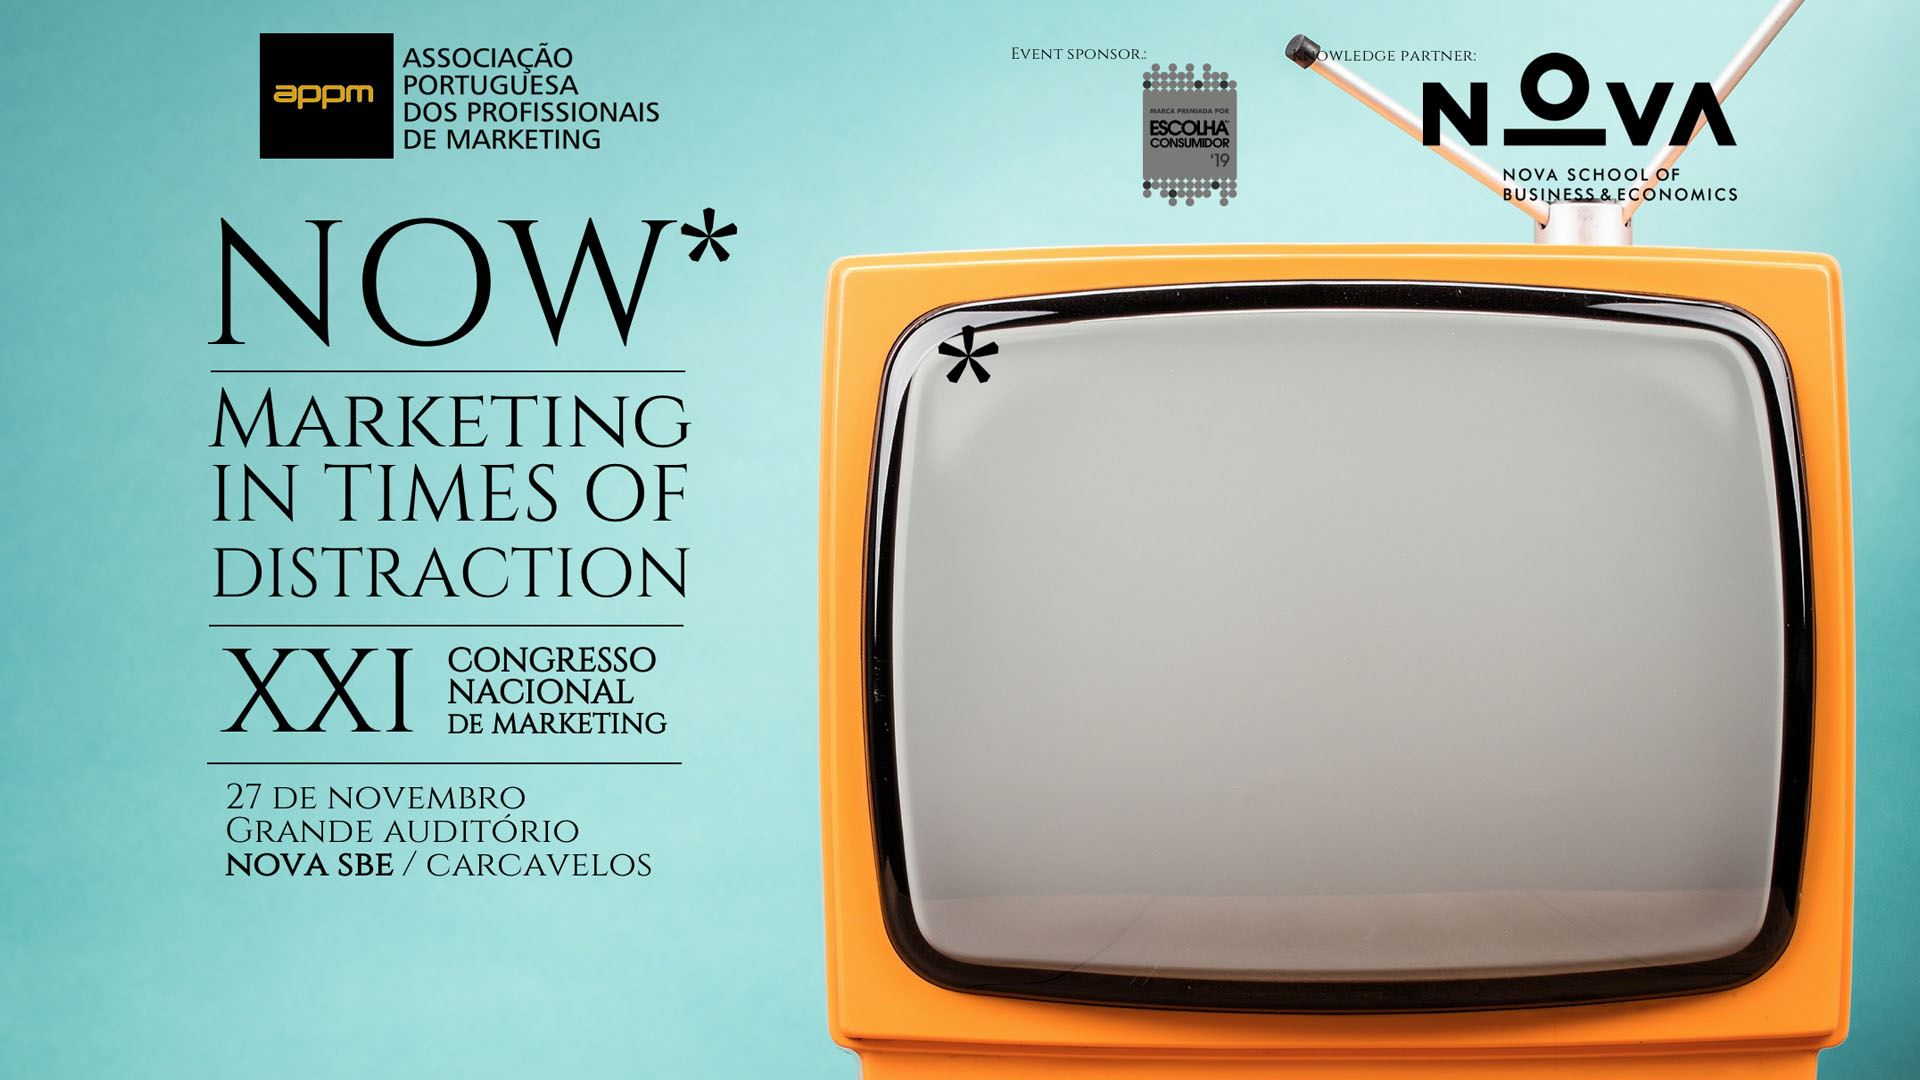 NOW - Marketing in Times of Distraction